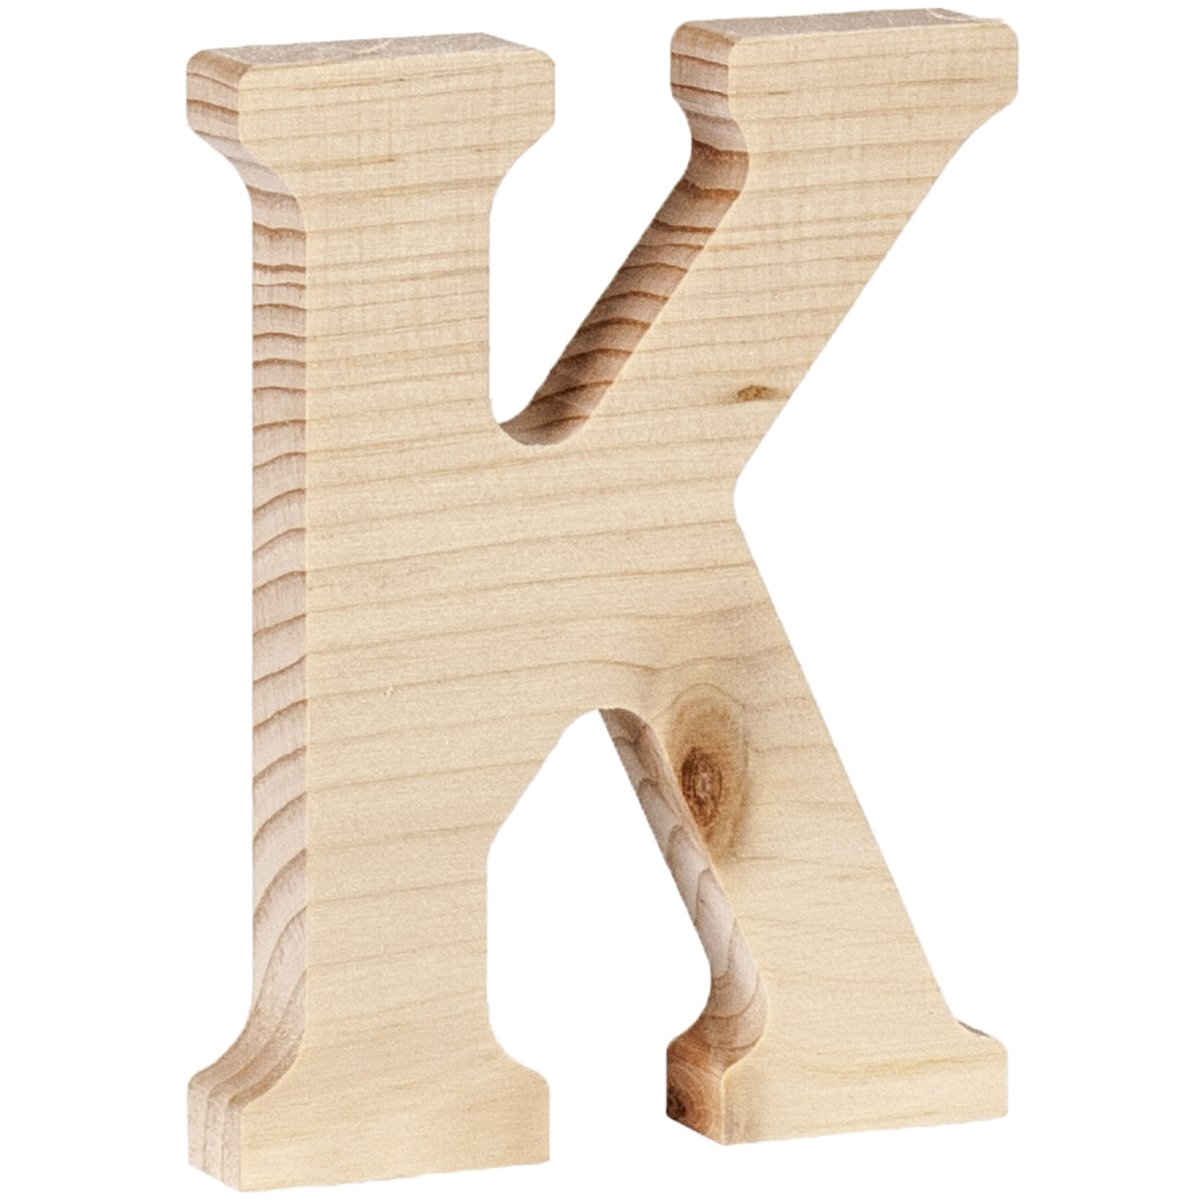 Walnut Hollow 262WH-26242 Wood Letter, 5 x 0.63, K 5 x 0.63